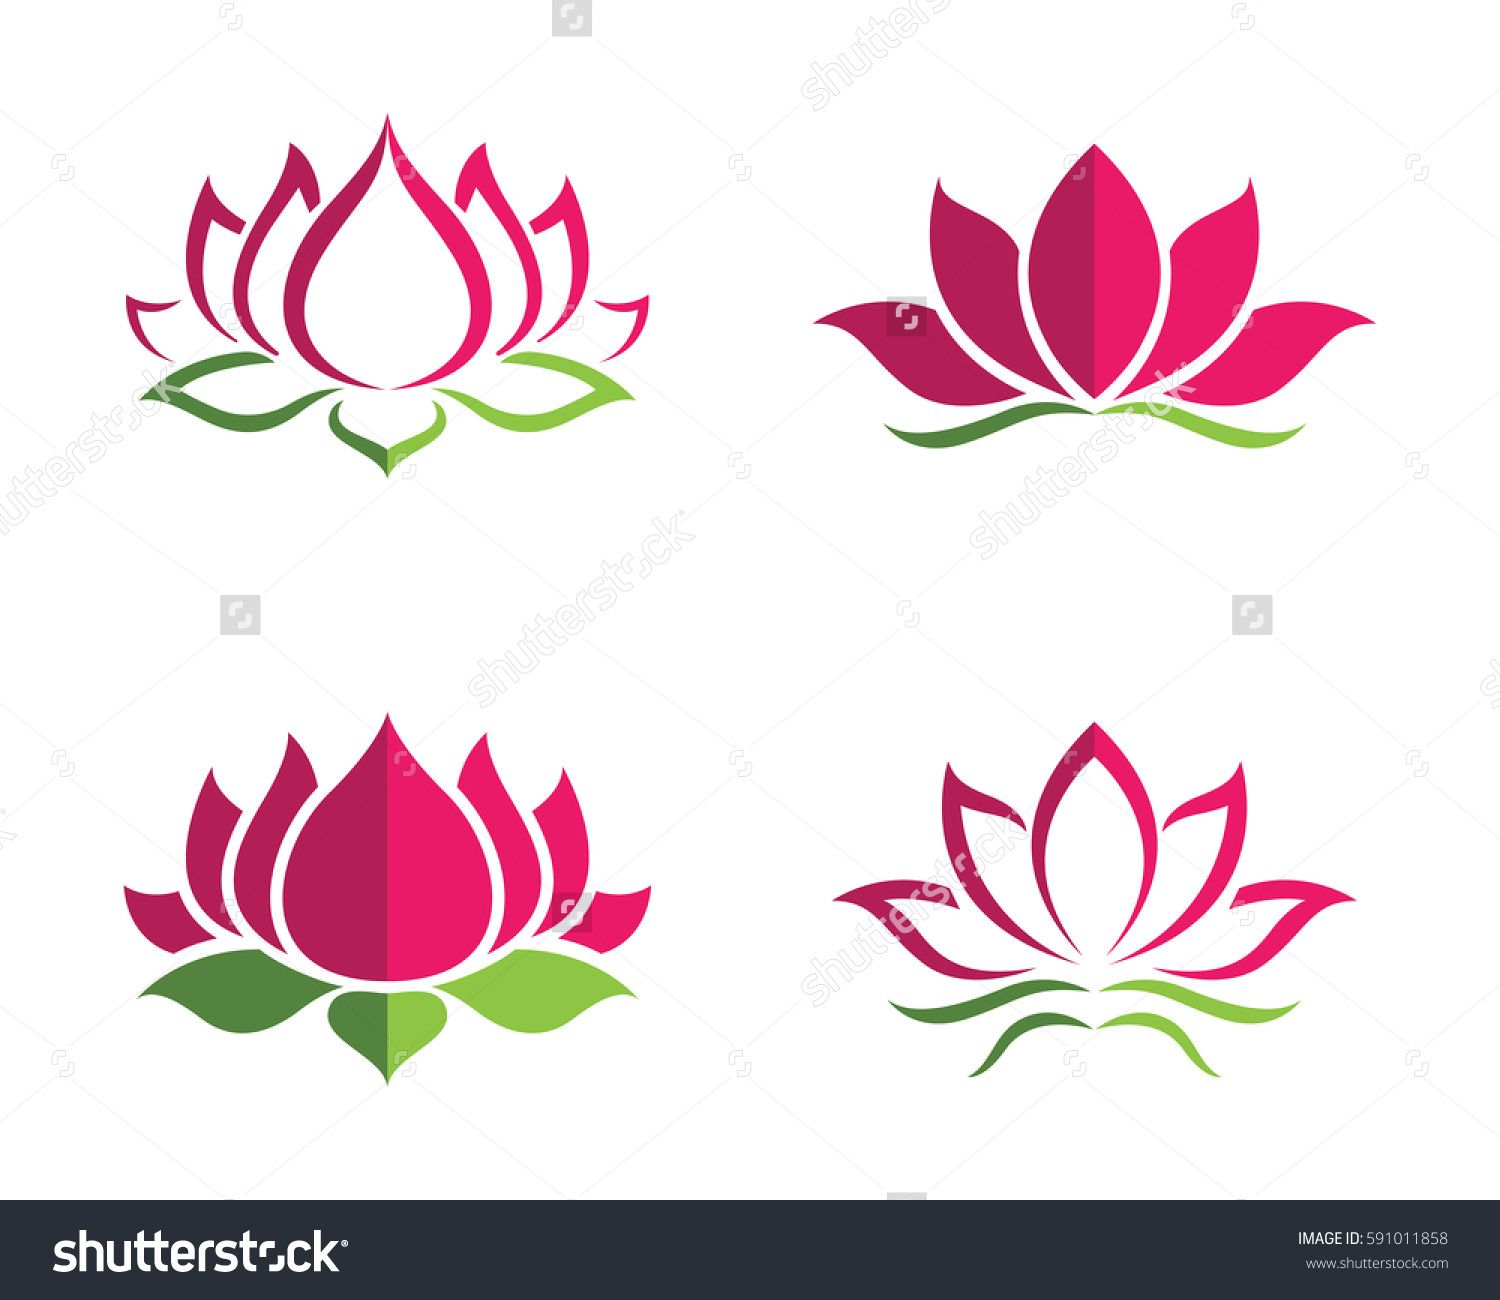 Beauty vector lotus flowers design logo template icon lotus beauty vector lotus flowers design logo template icon izmirmasajfo